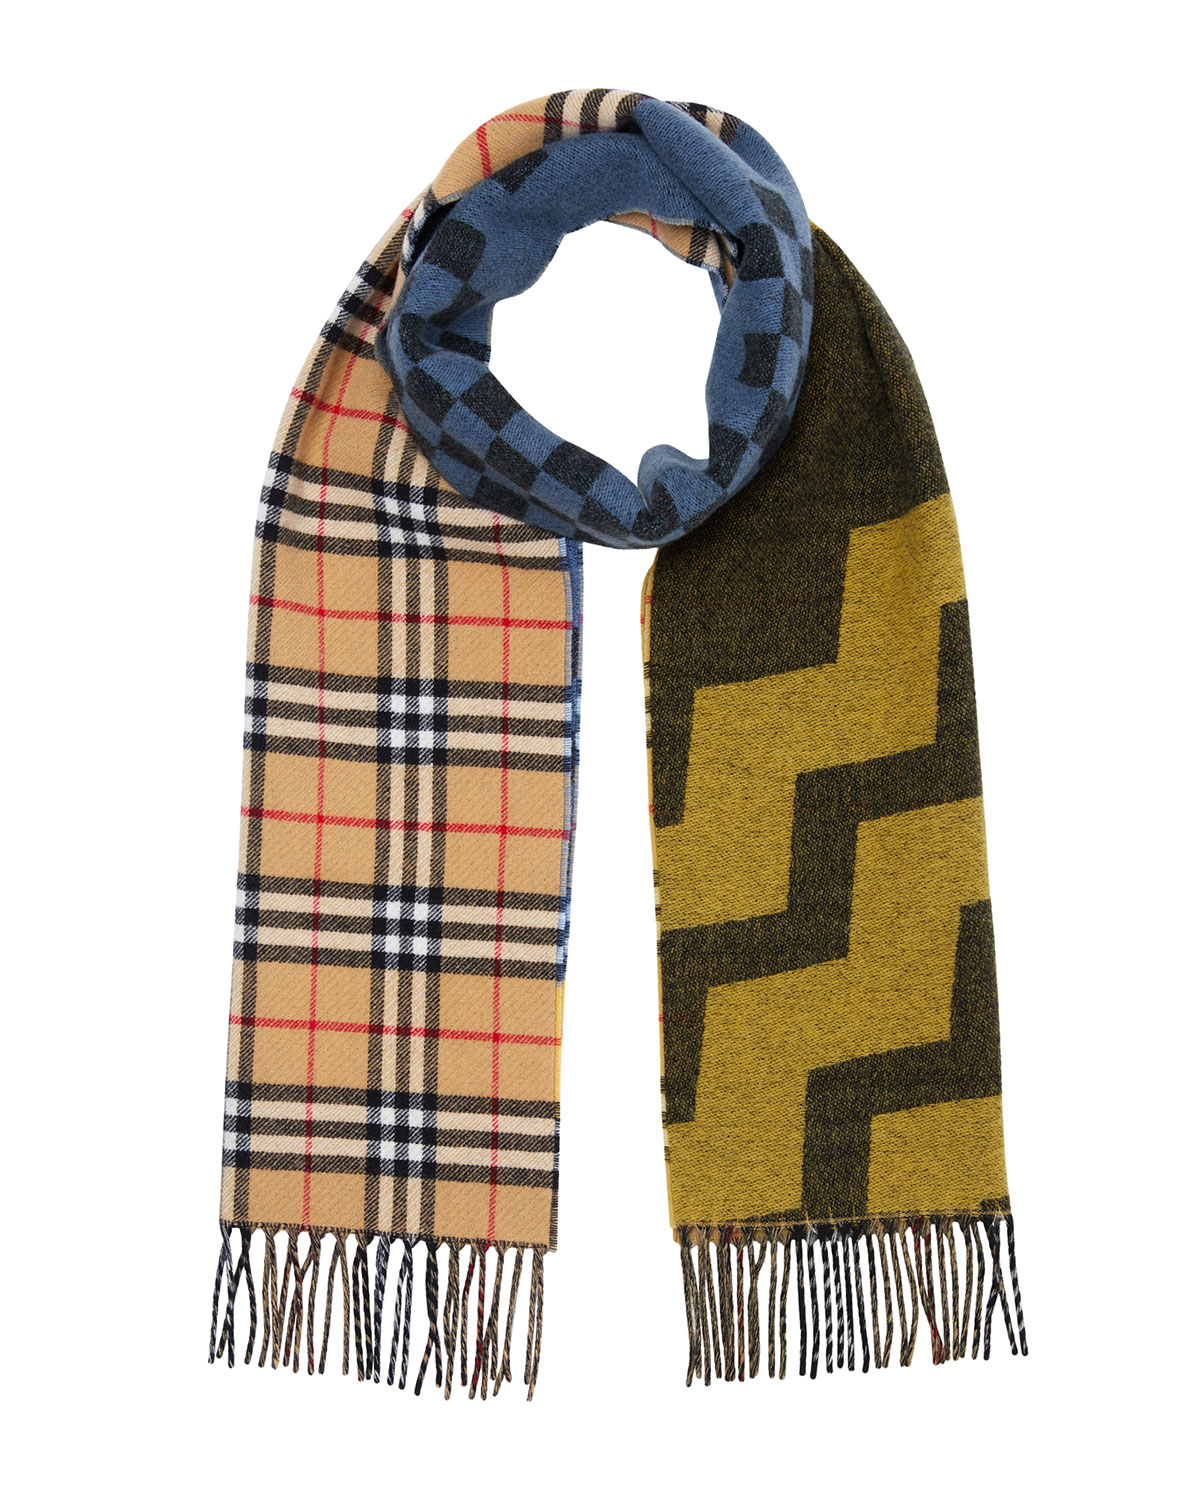 Burberry Men's Colorblock Checkerboard Wool/Cashmere Scarf